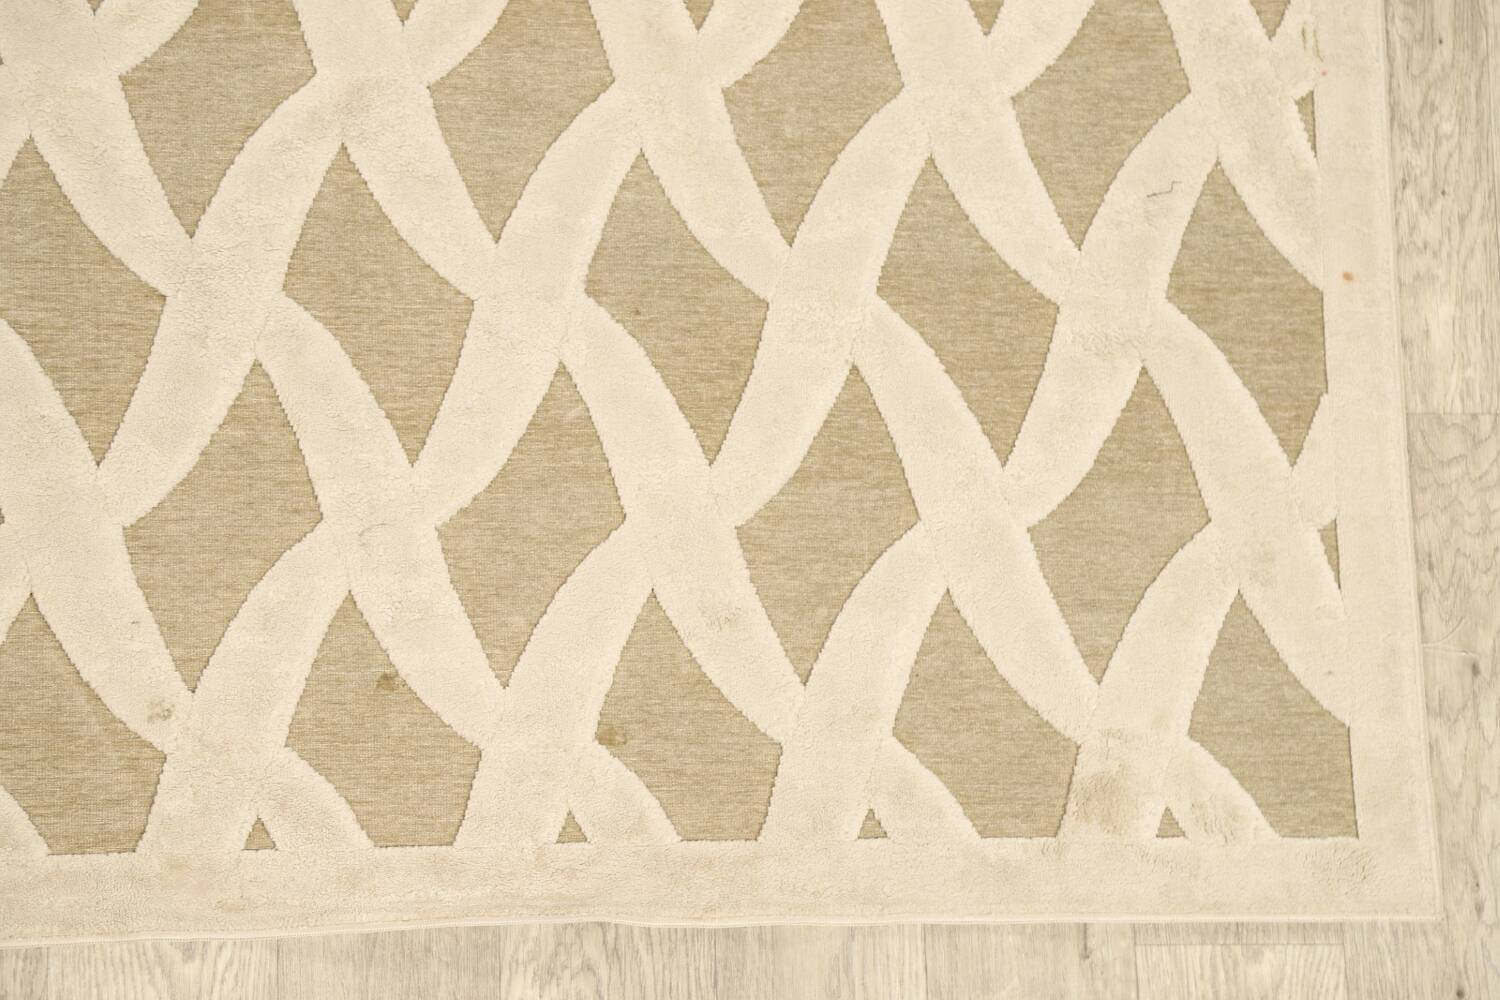 All-Over Waves Design Modern Oriental Area Rug 6x9 image 5